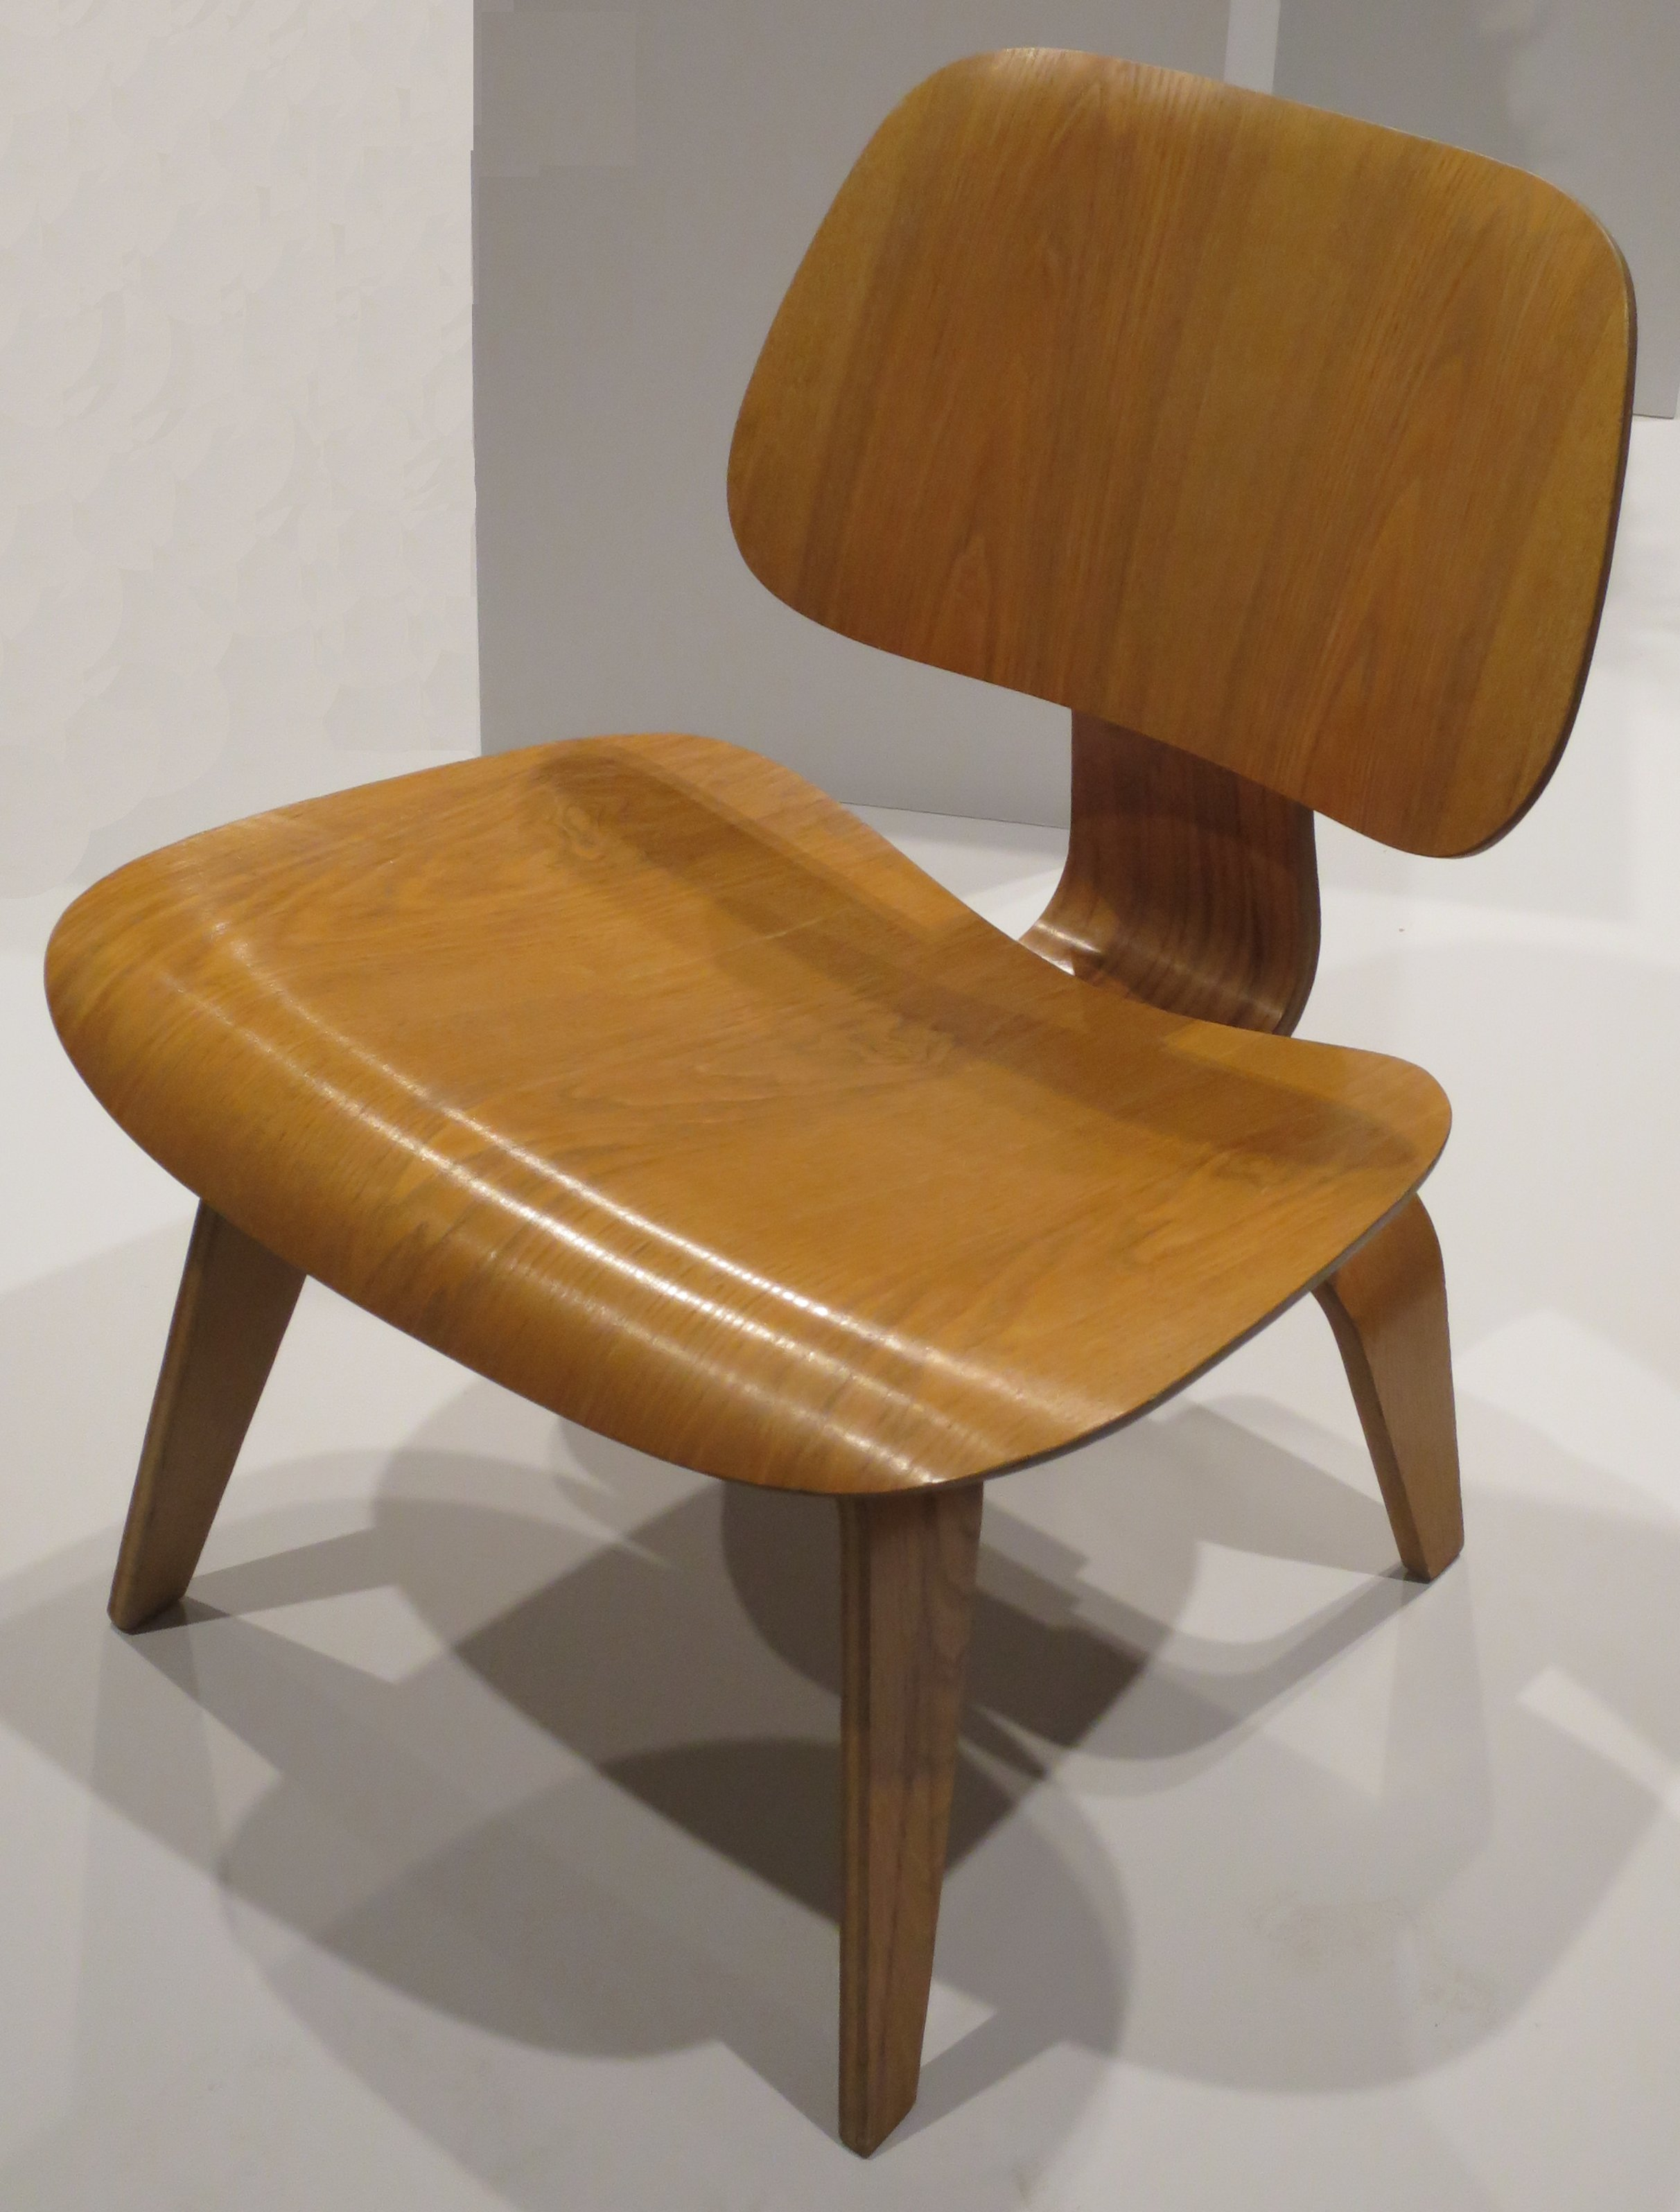 Plywood Furniture Eames Lounge Chair Wood Wikipedia